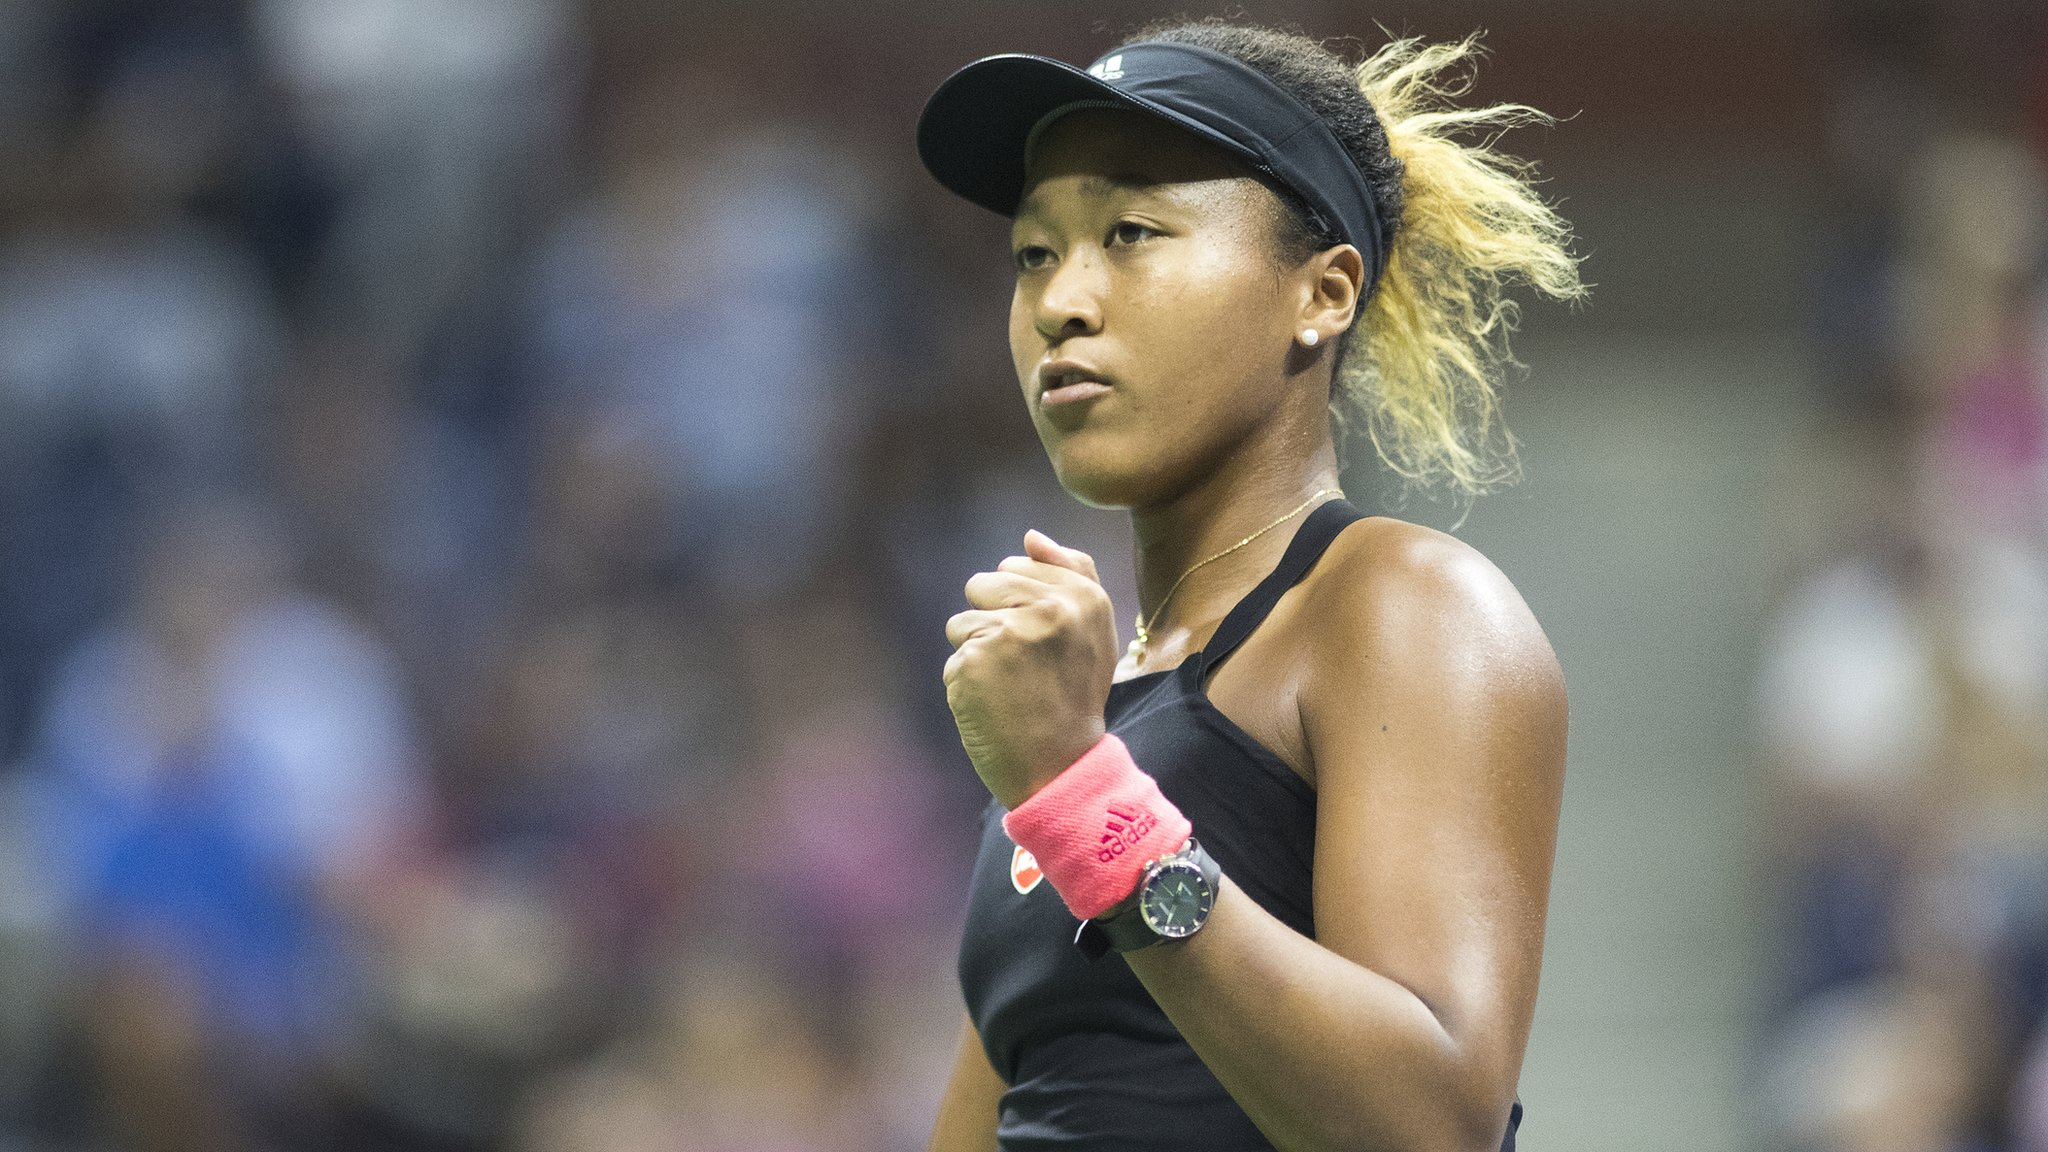 Osaka wins first match since US Open victory